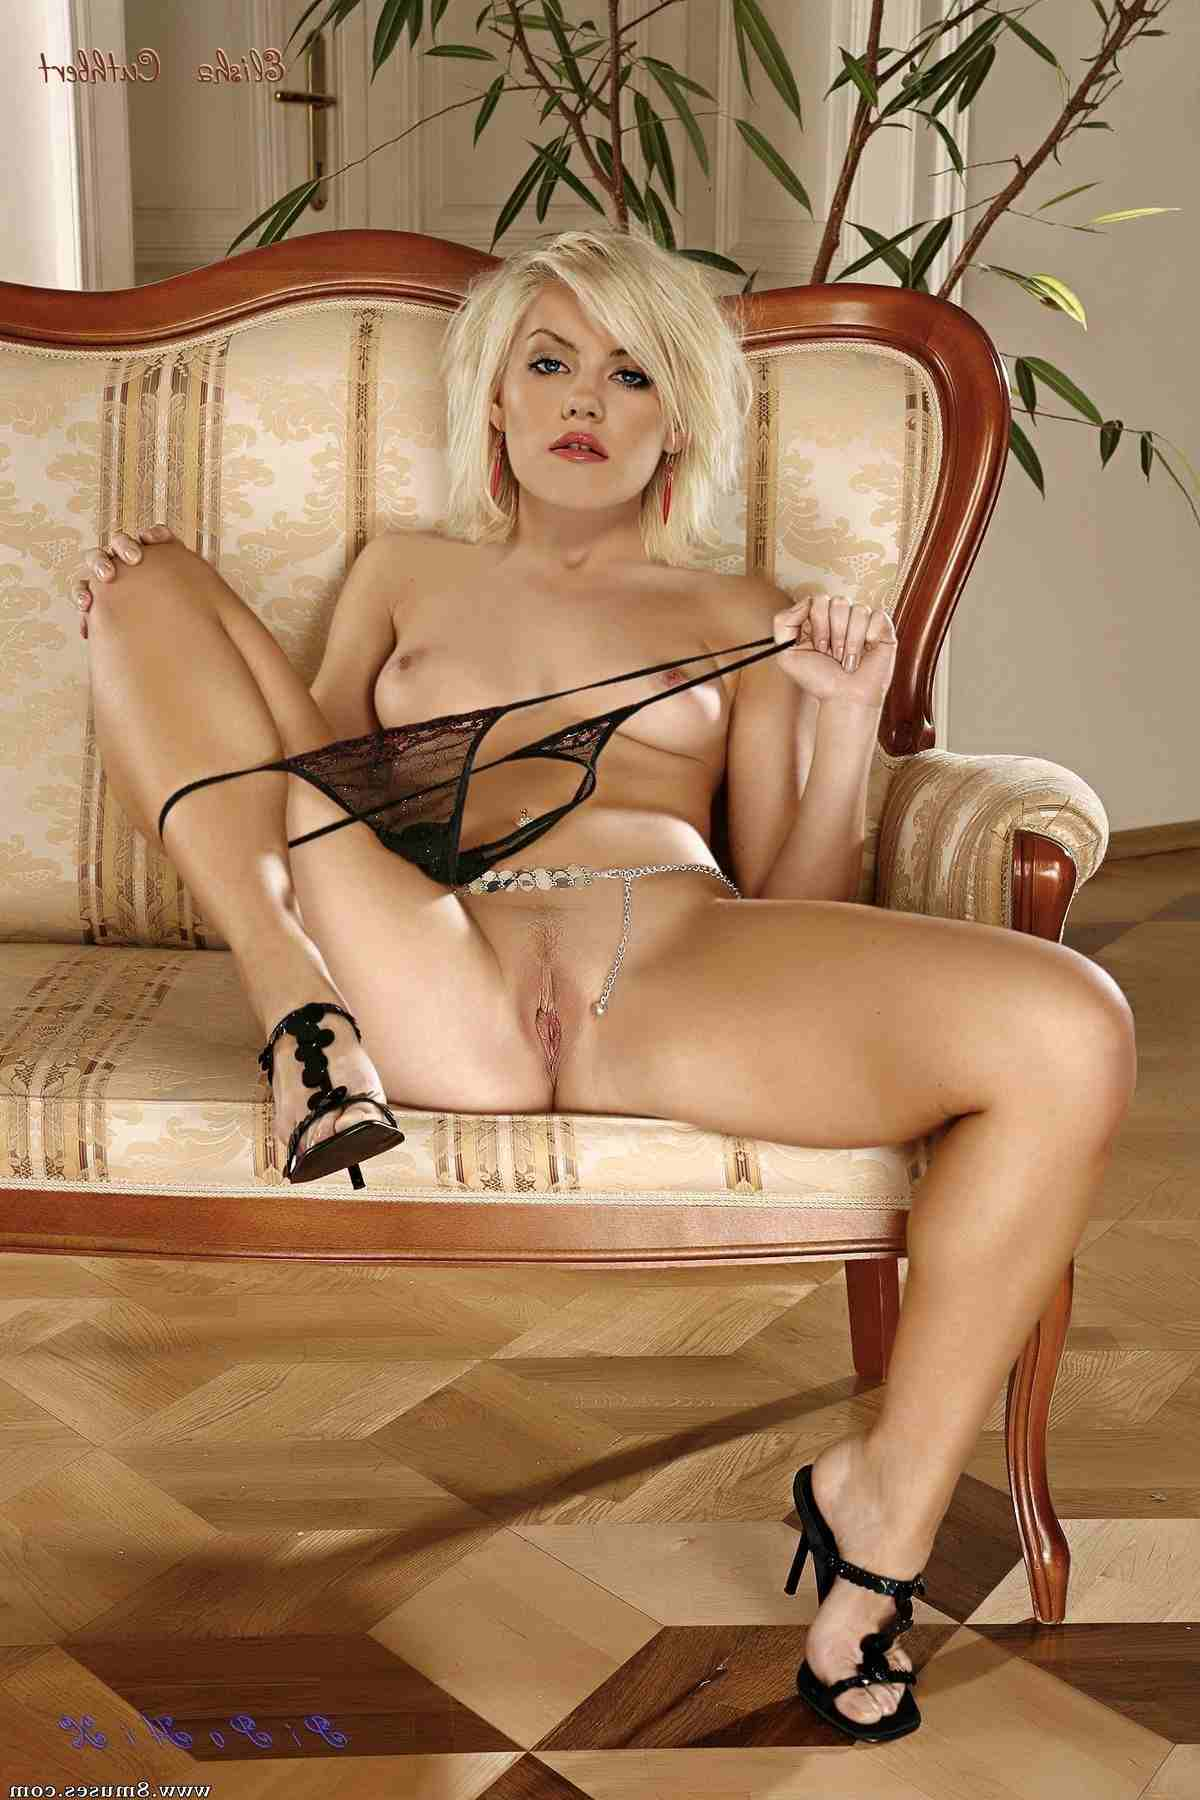 Fake-Celebrities-Sex-Pictures/Elisha-Cuthbert Elisha_Cuthbert__8muses_-_Sex_and_Porn_Comics_305.jpg